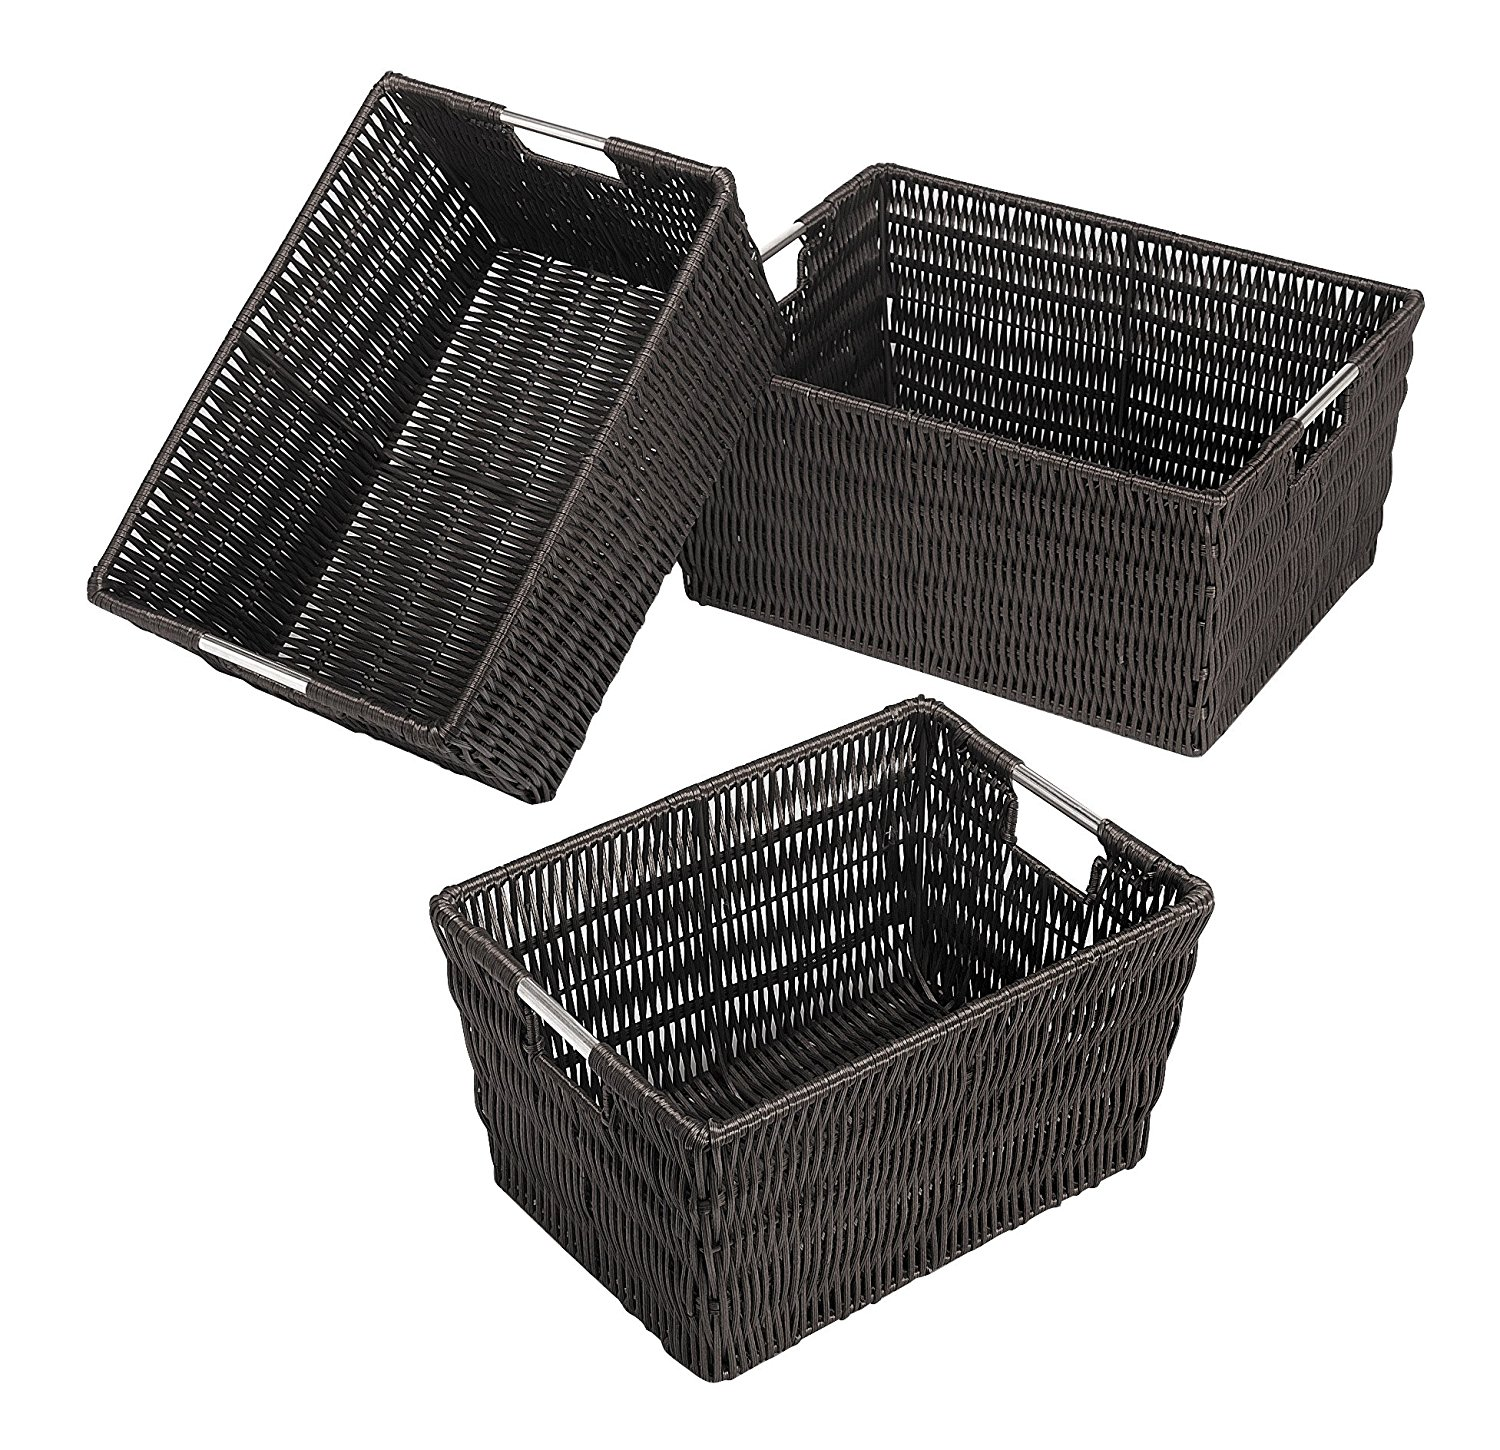 Rattique Storage Baskets Set of 3 Espresso, COLLECTION Rattan RATTIQUE Zippered Metal your office Insert space Hanging... by